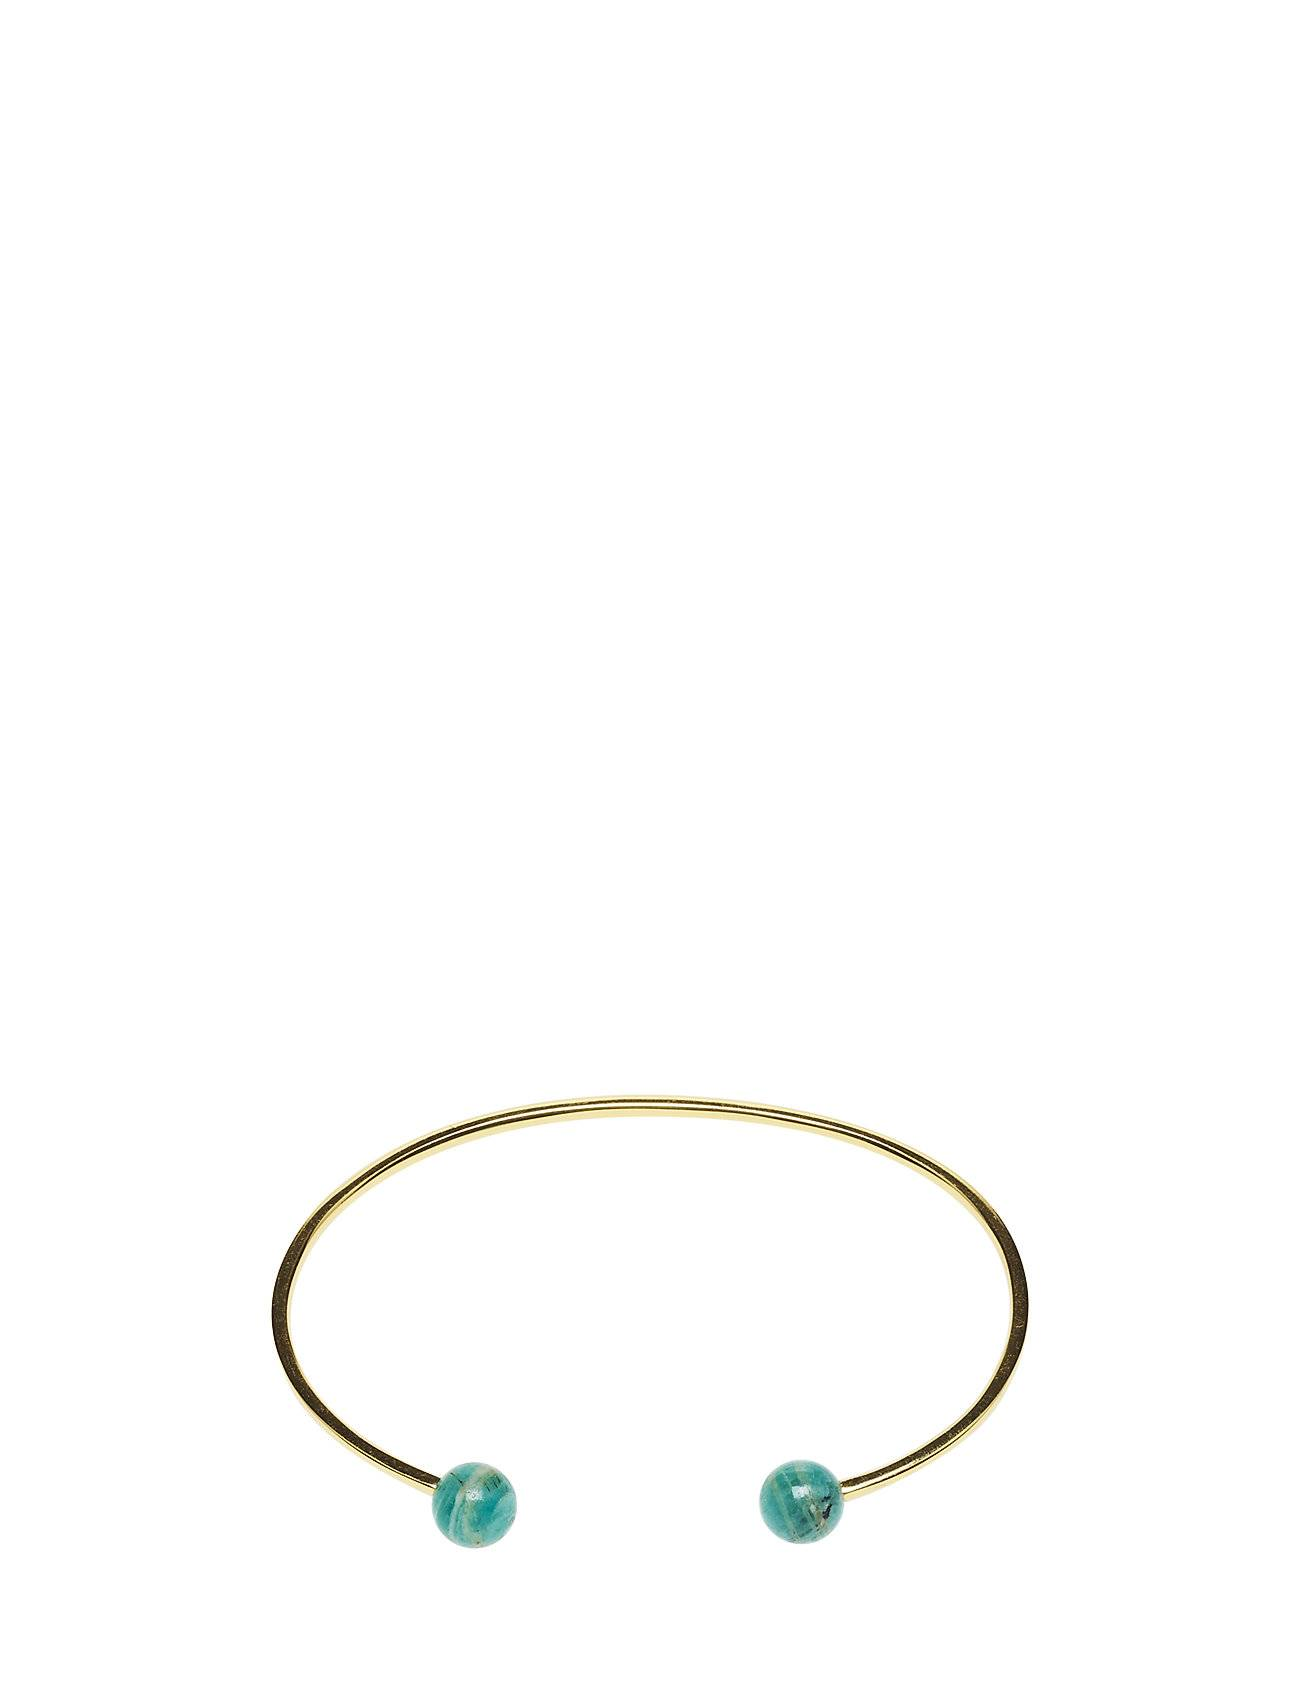 Syster P Planet Bracelet Gold Amazonite Accessories Jewellery Bracelets Bangles Kulta Syster P